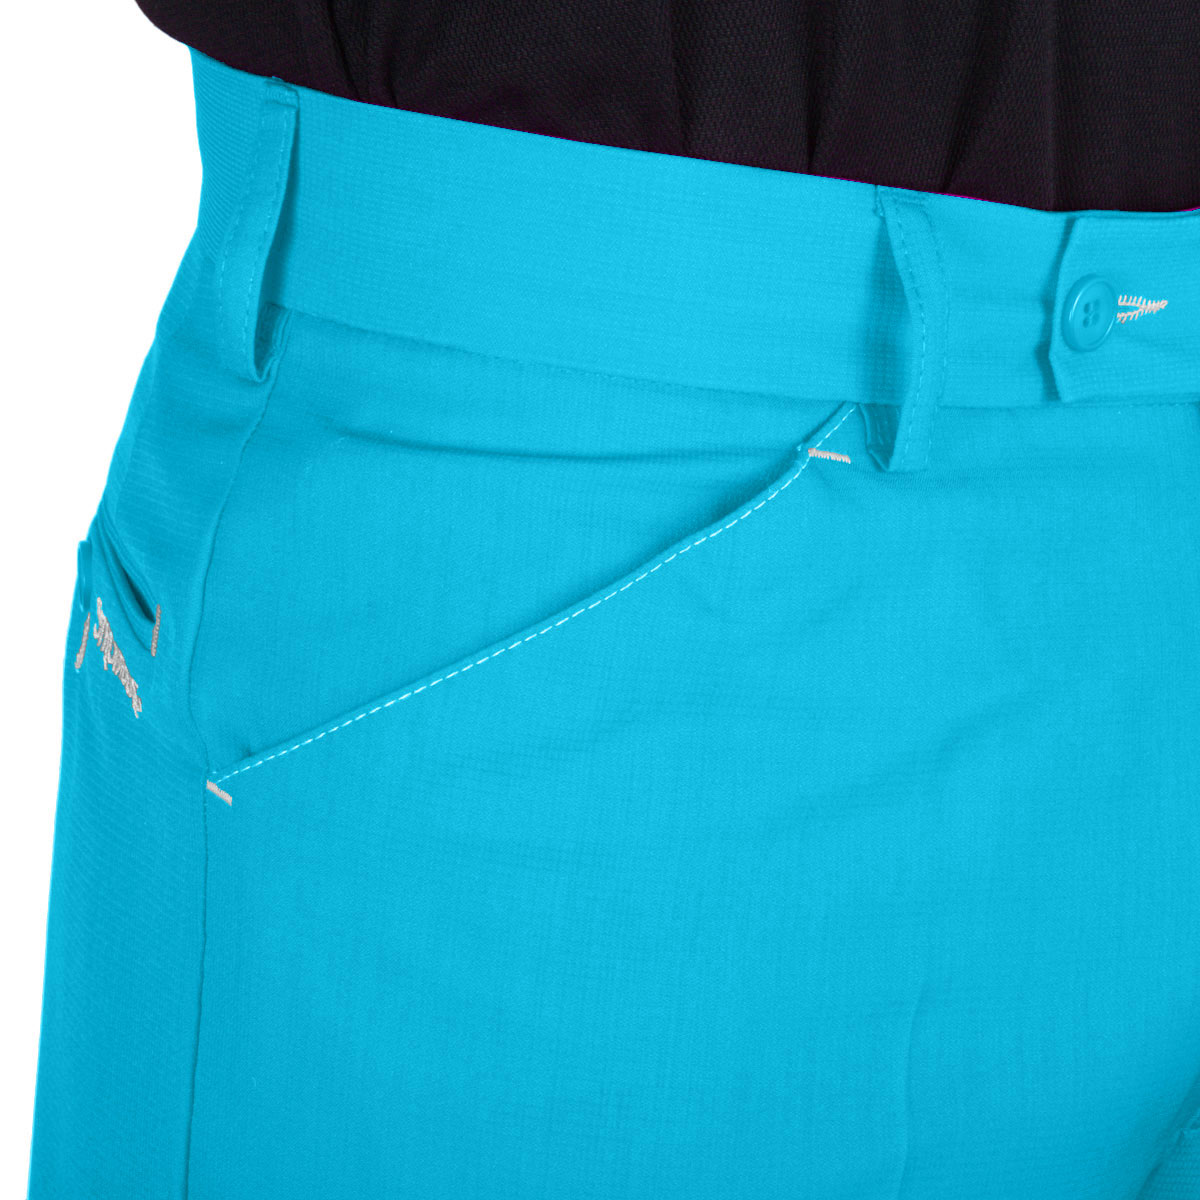 Stromberg-Mens-Sintra-Slim-Fit-Technical-Funky-Golf-Trousers-40-OFF-RRP thumbnail 8